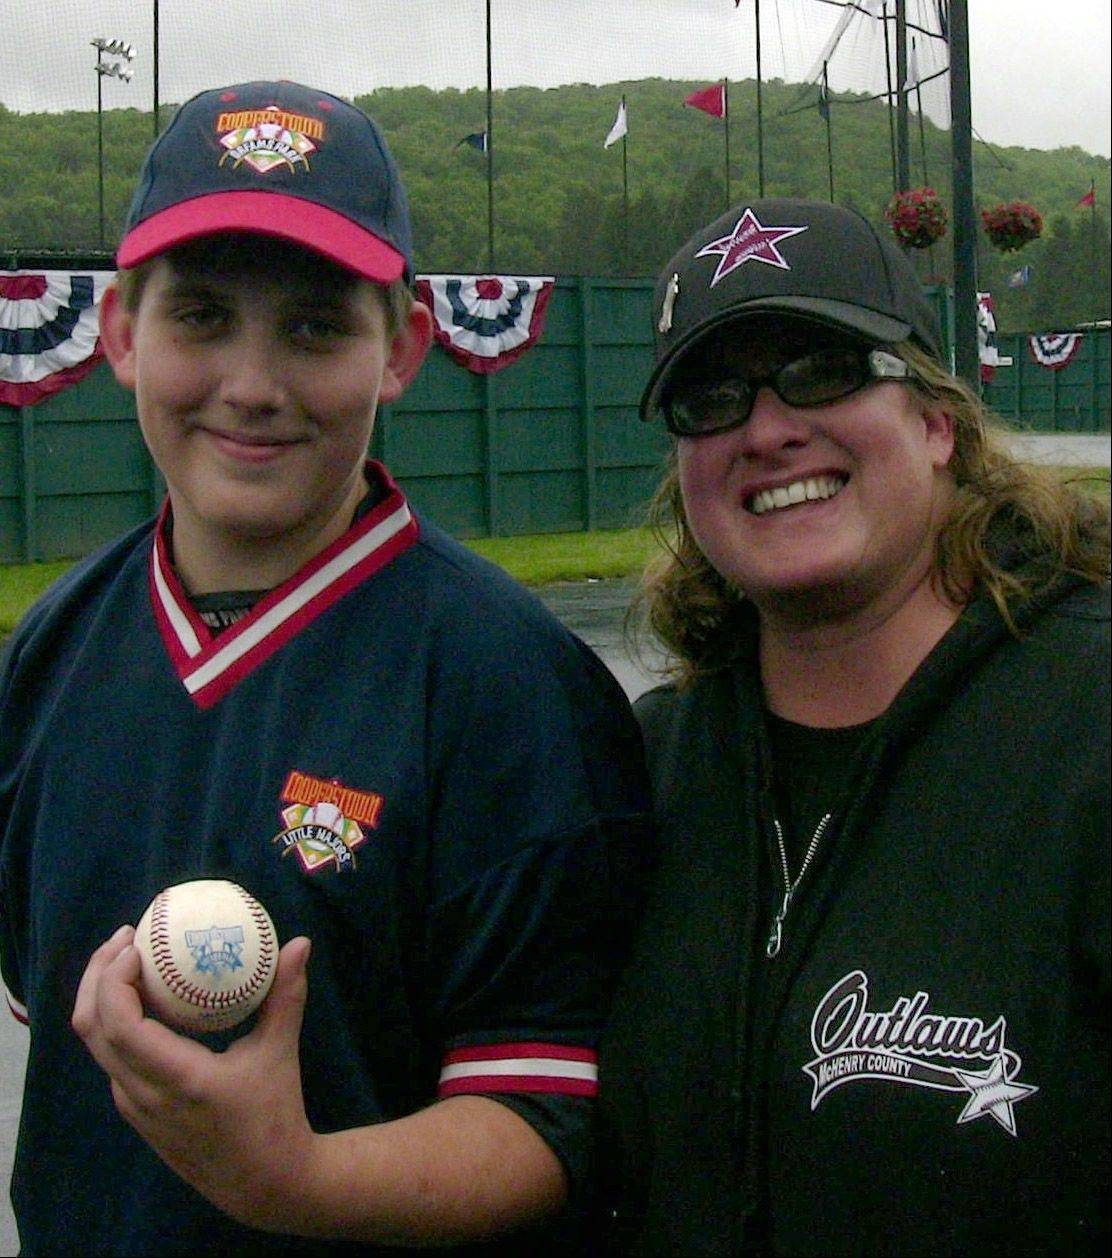 Kathy Dozier of Algonquin died Oct. 5. In this June photo, she is pictured with her son, Mason Kamp, 12, who hit a grand slam in her honor in Cooperstown, N.Y.